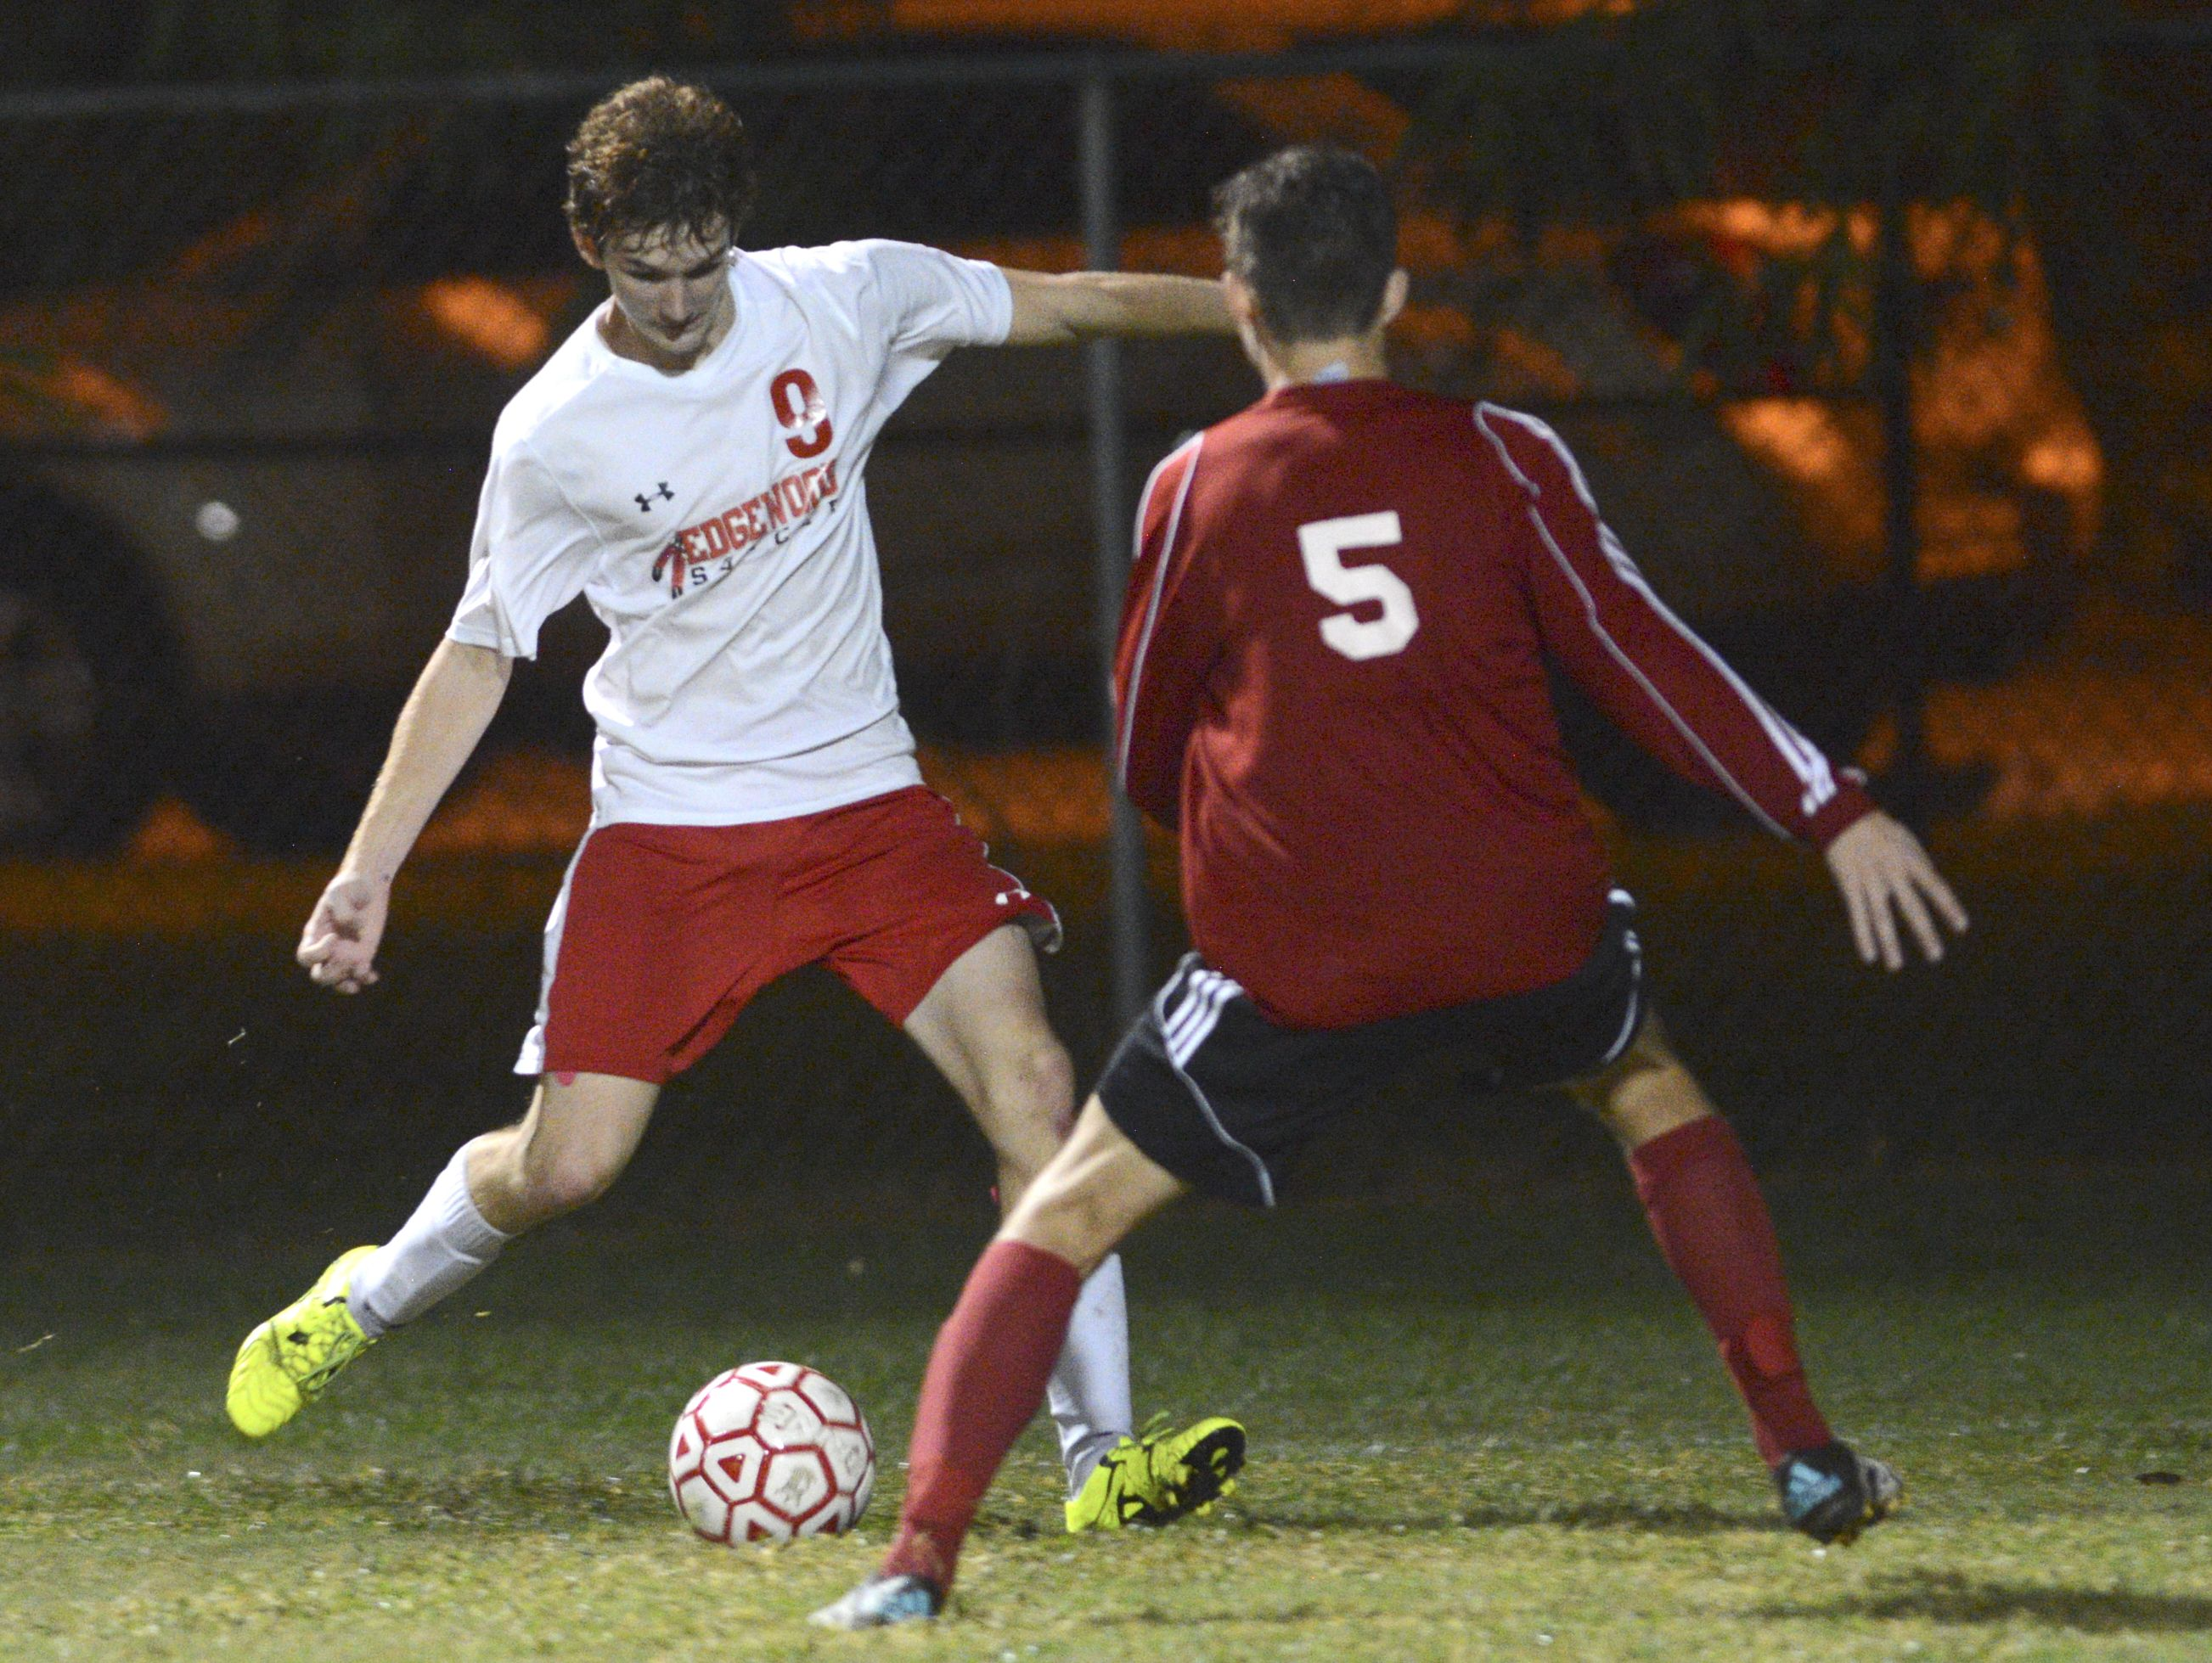 Edgewood's Christian Yates takes a shot at the goal past Vero Beach defender Dunton Jaret during a recent game.